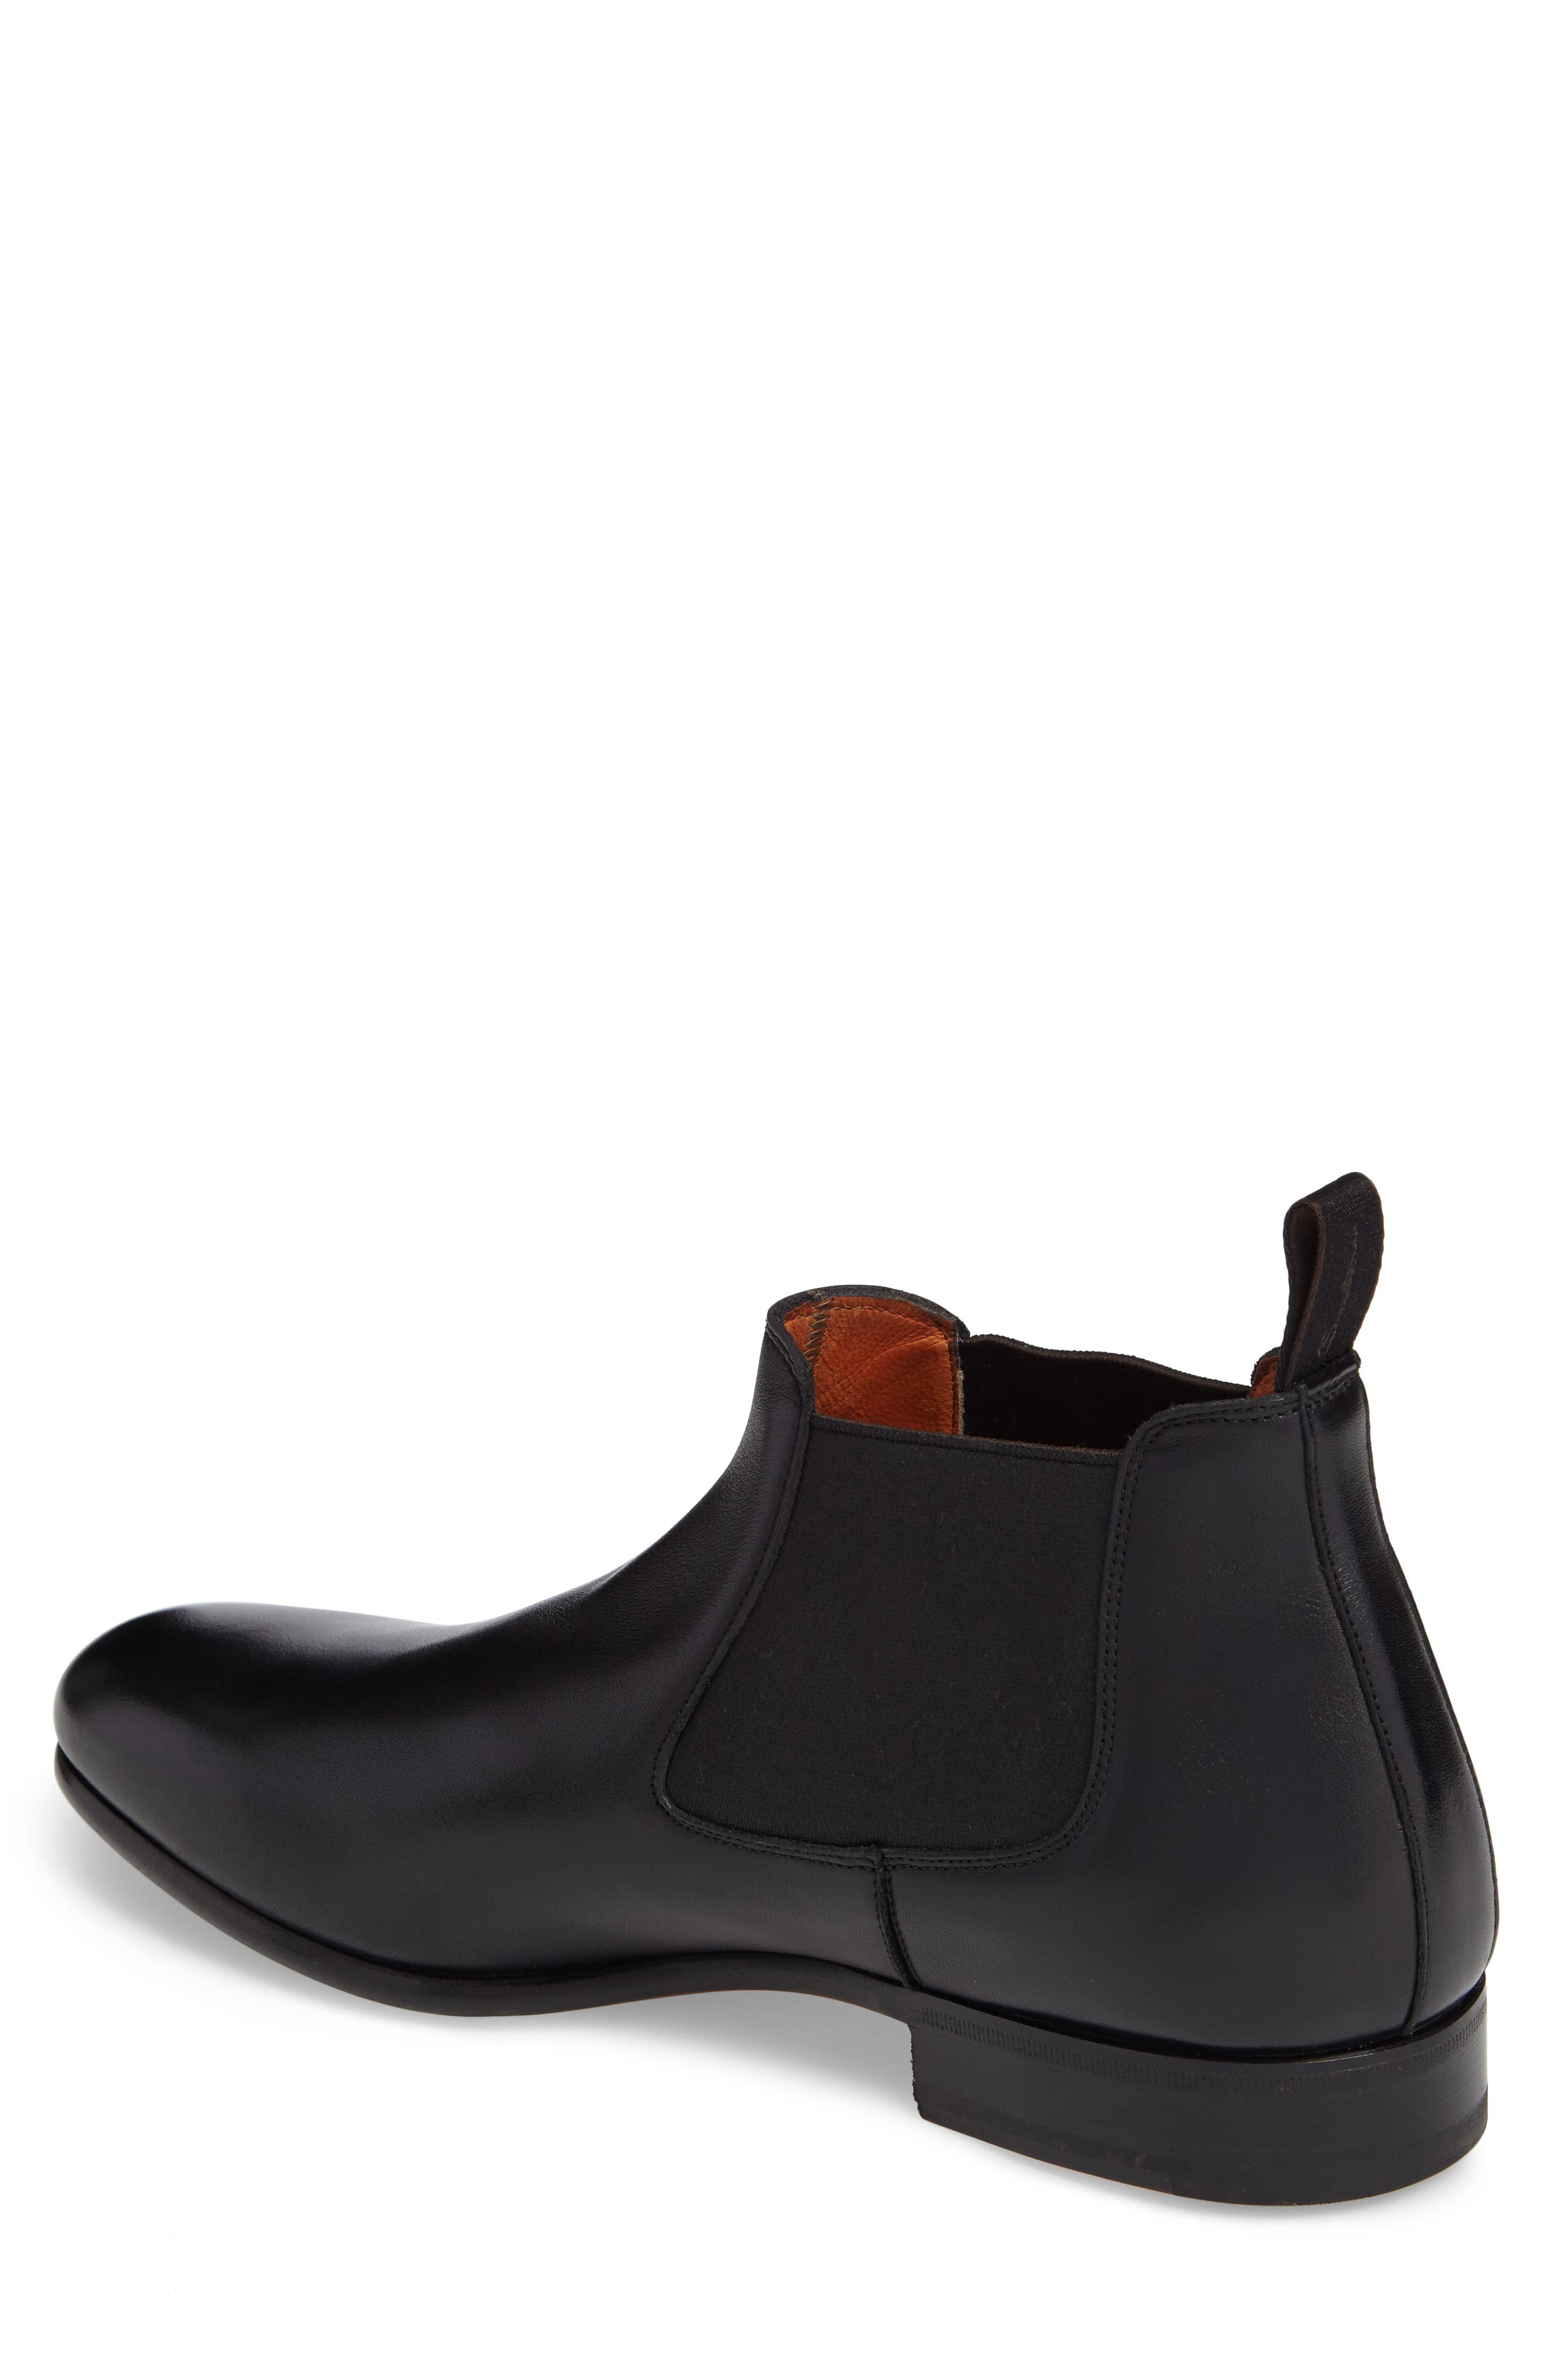 Gunther Chelsea Boot,                             Alternate thumbnail 2, color,                             Black Leather